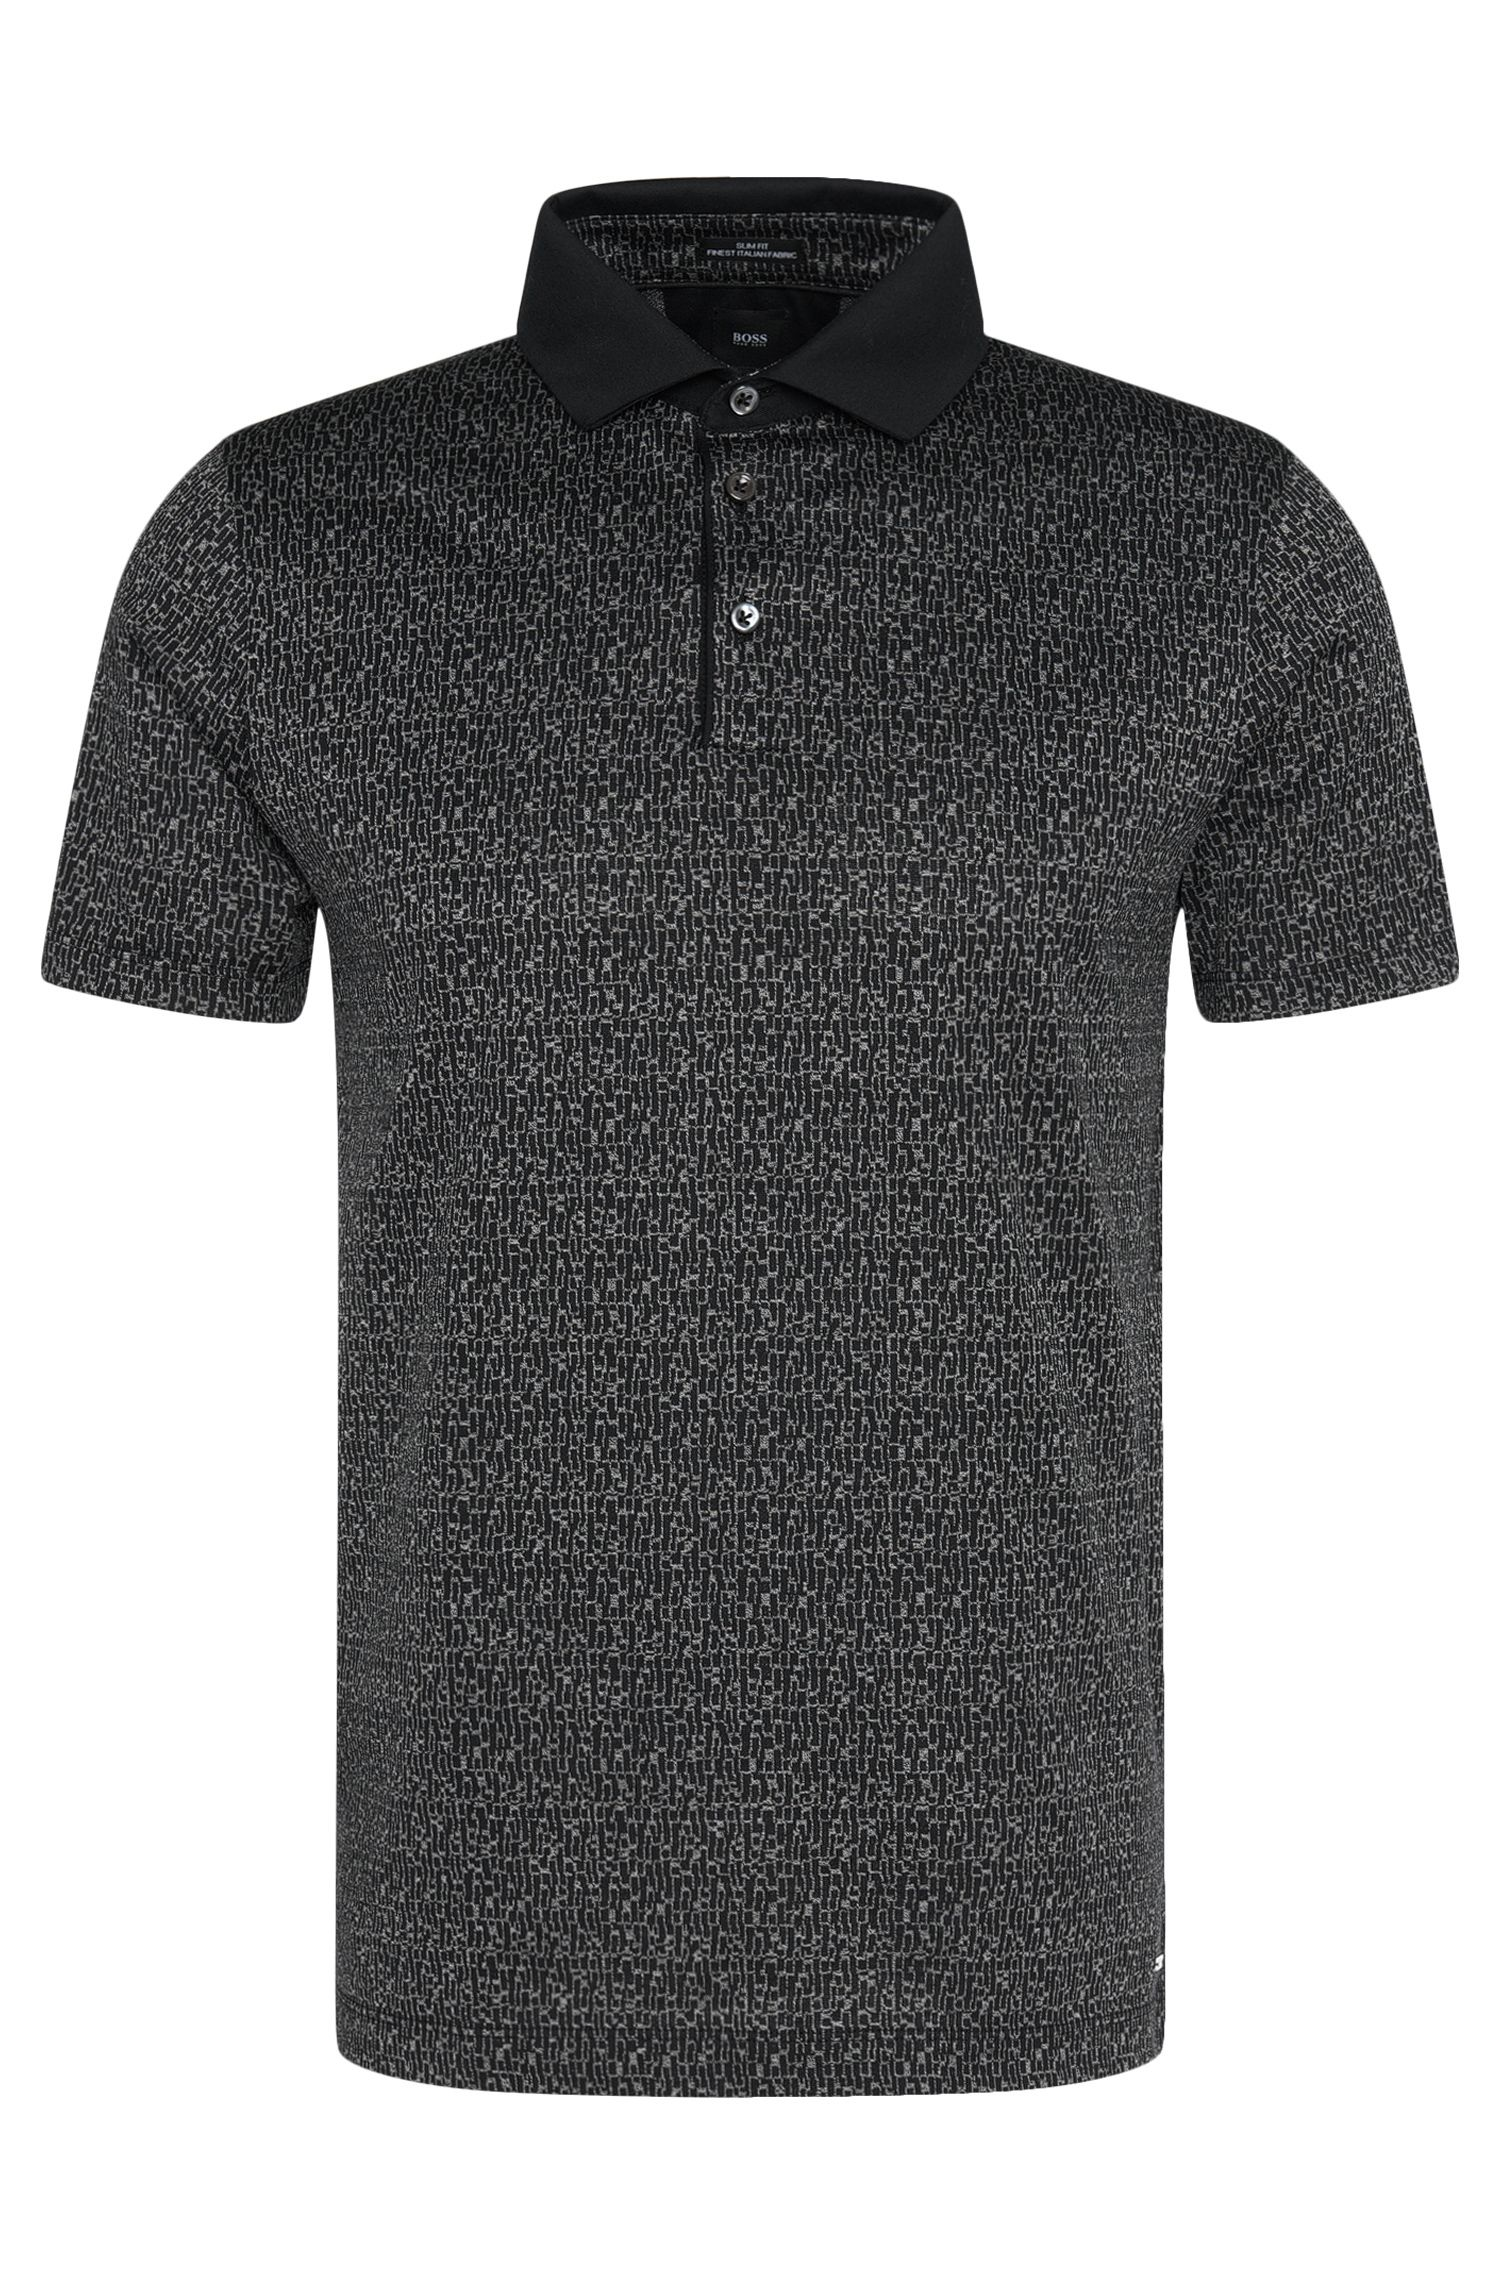 Gemustertes Slim-Fit Tailored Poloshirt aus Baumwolle: 'T-Pryde 22'